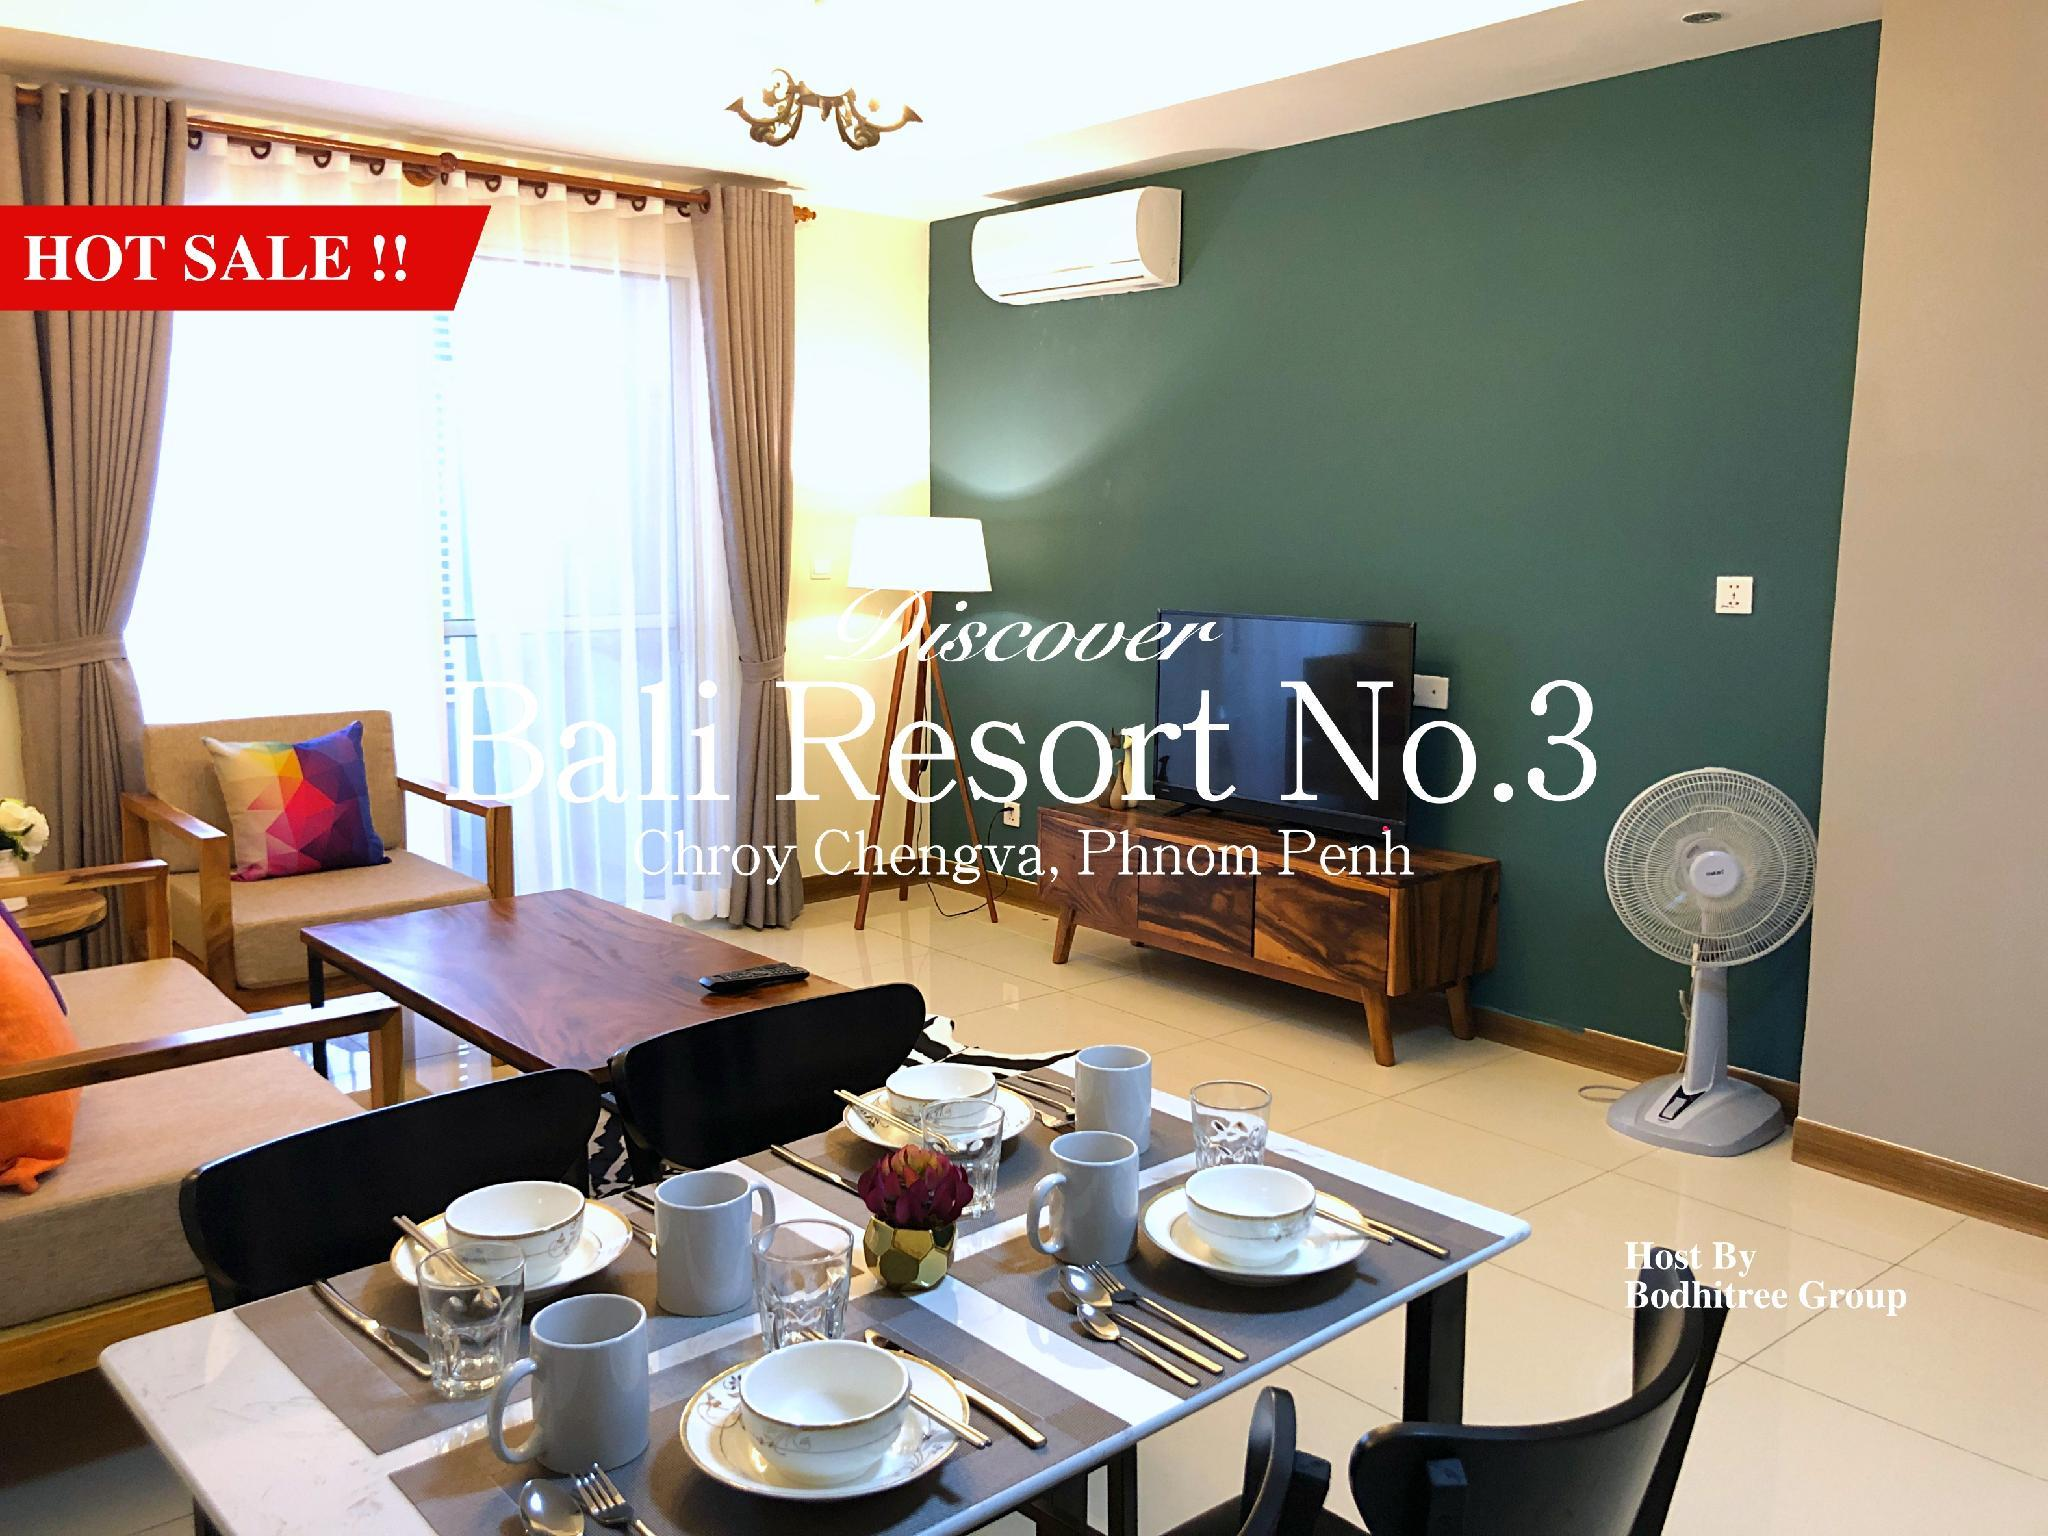 25C11 New RiverView Apartment Aeon Mall Sky Bar